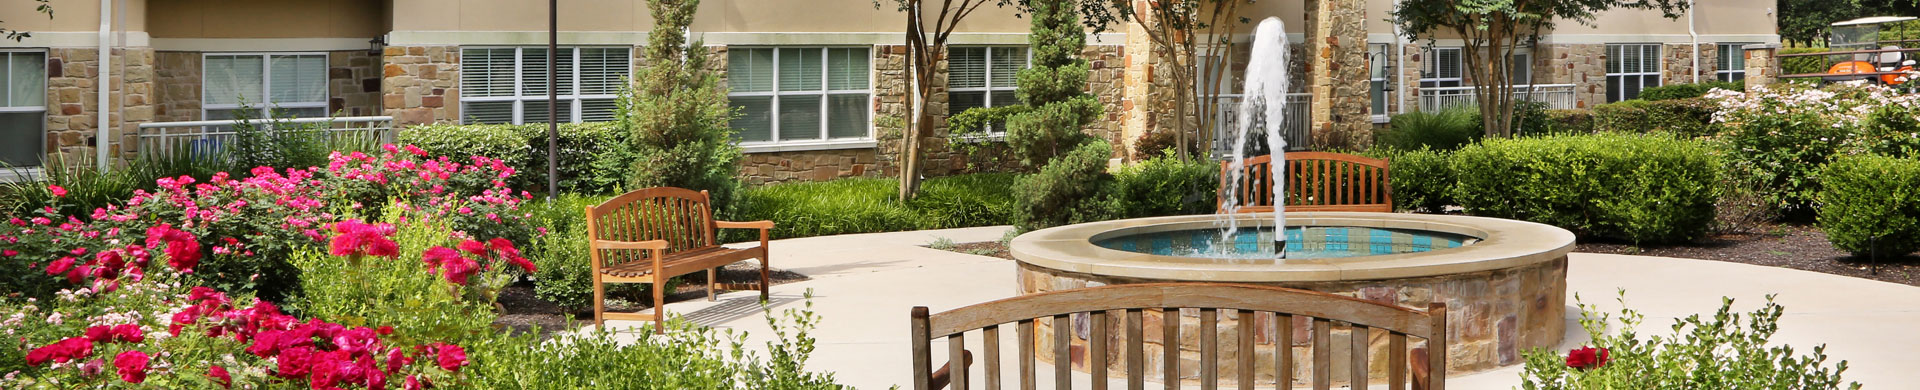 extended view of exterior sitting area at Longhorn Village Independent Living Community